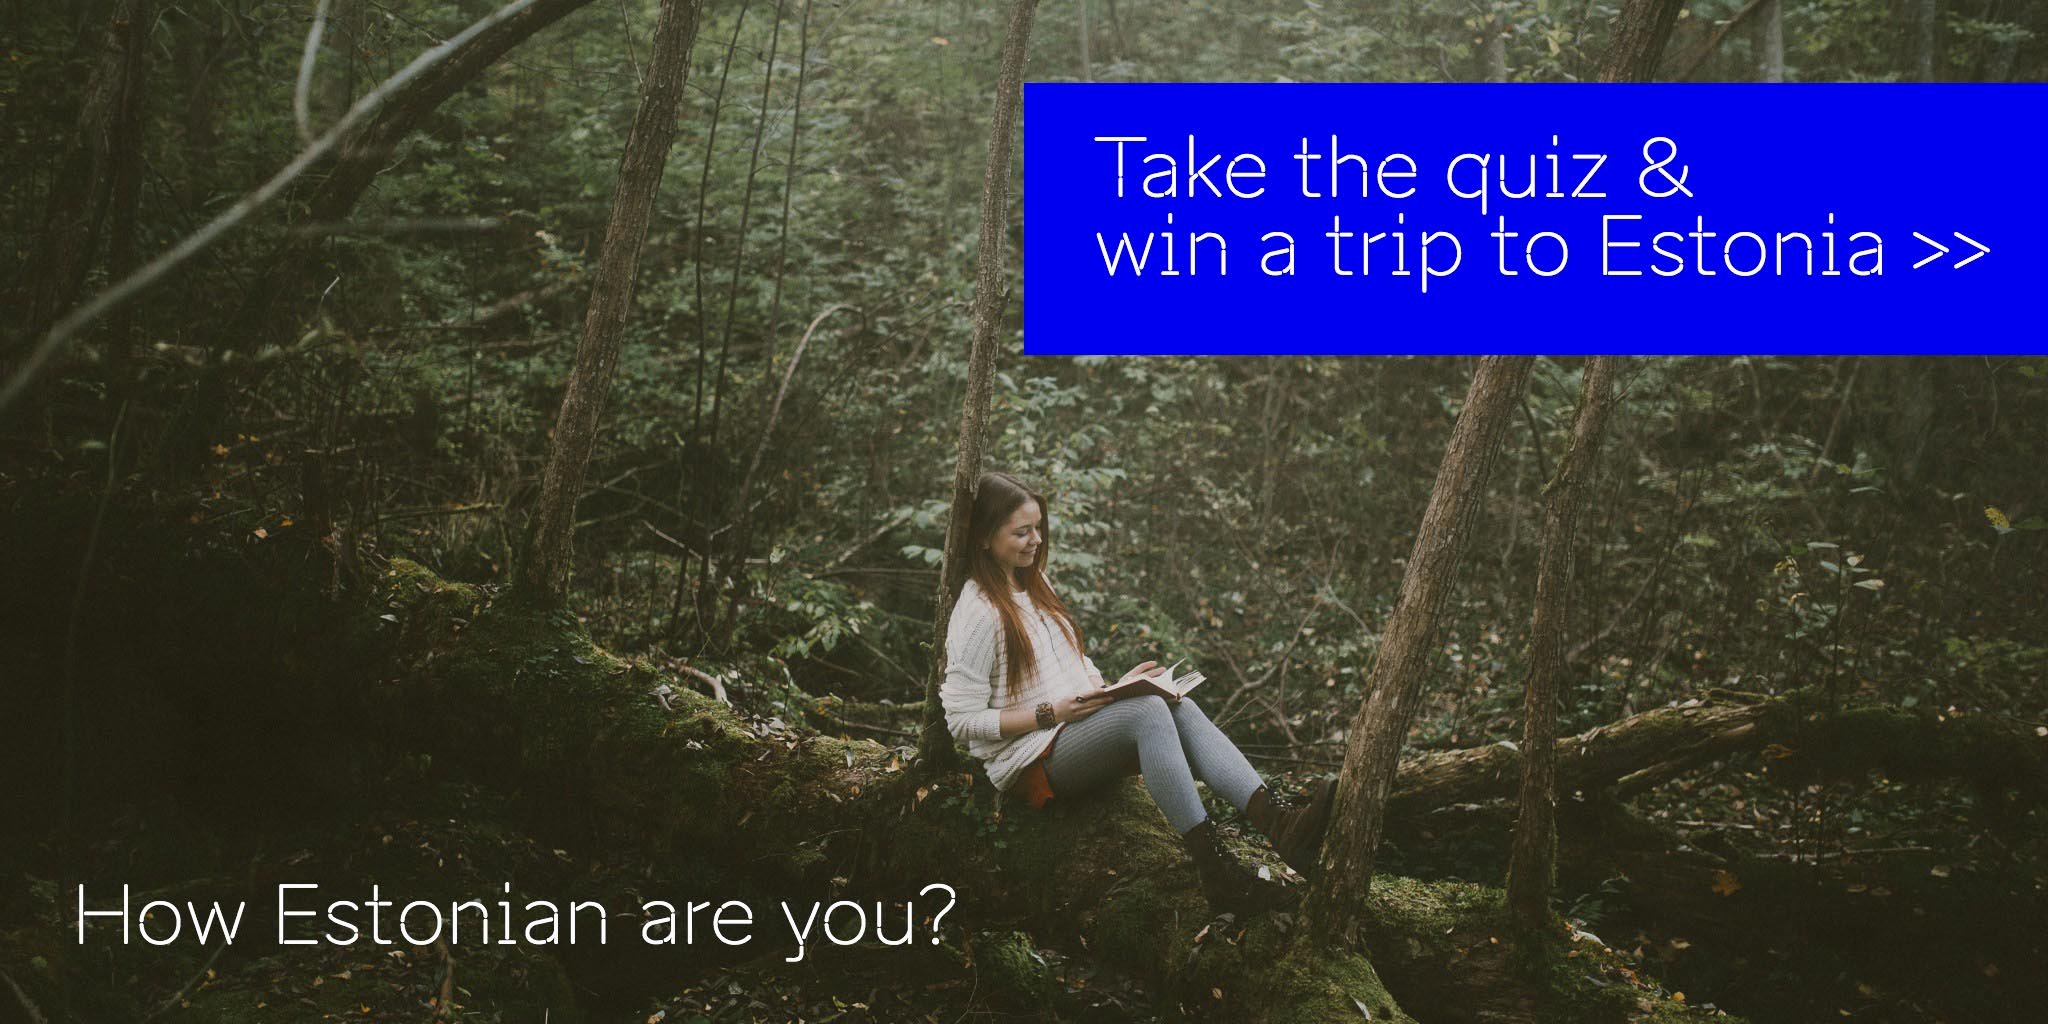 Take the quiz and win a trip to Estonia >>